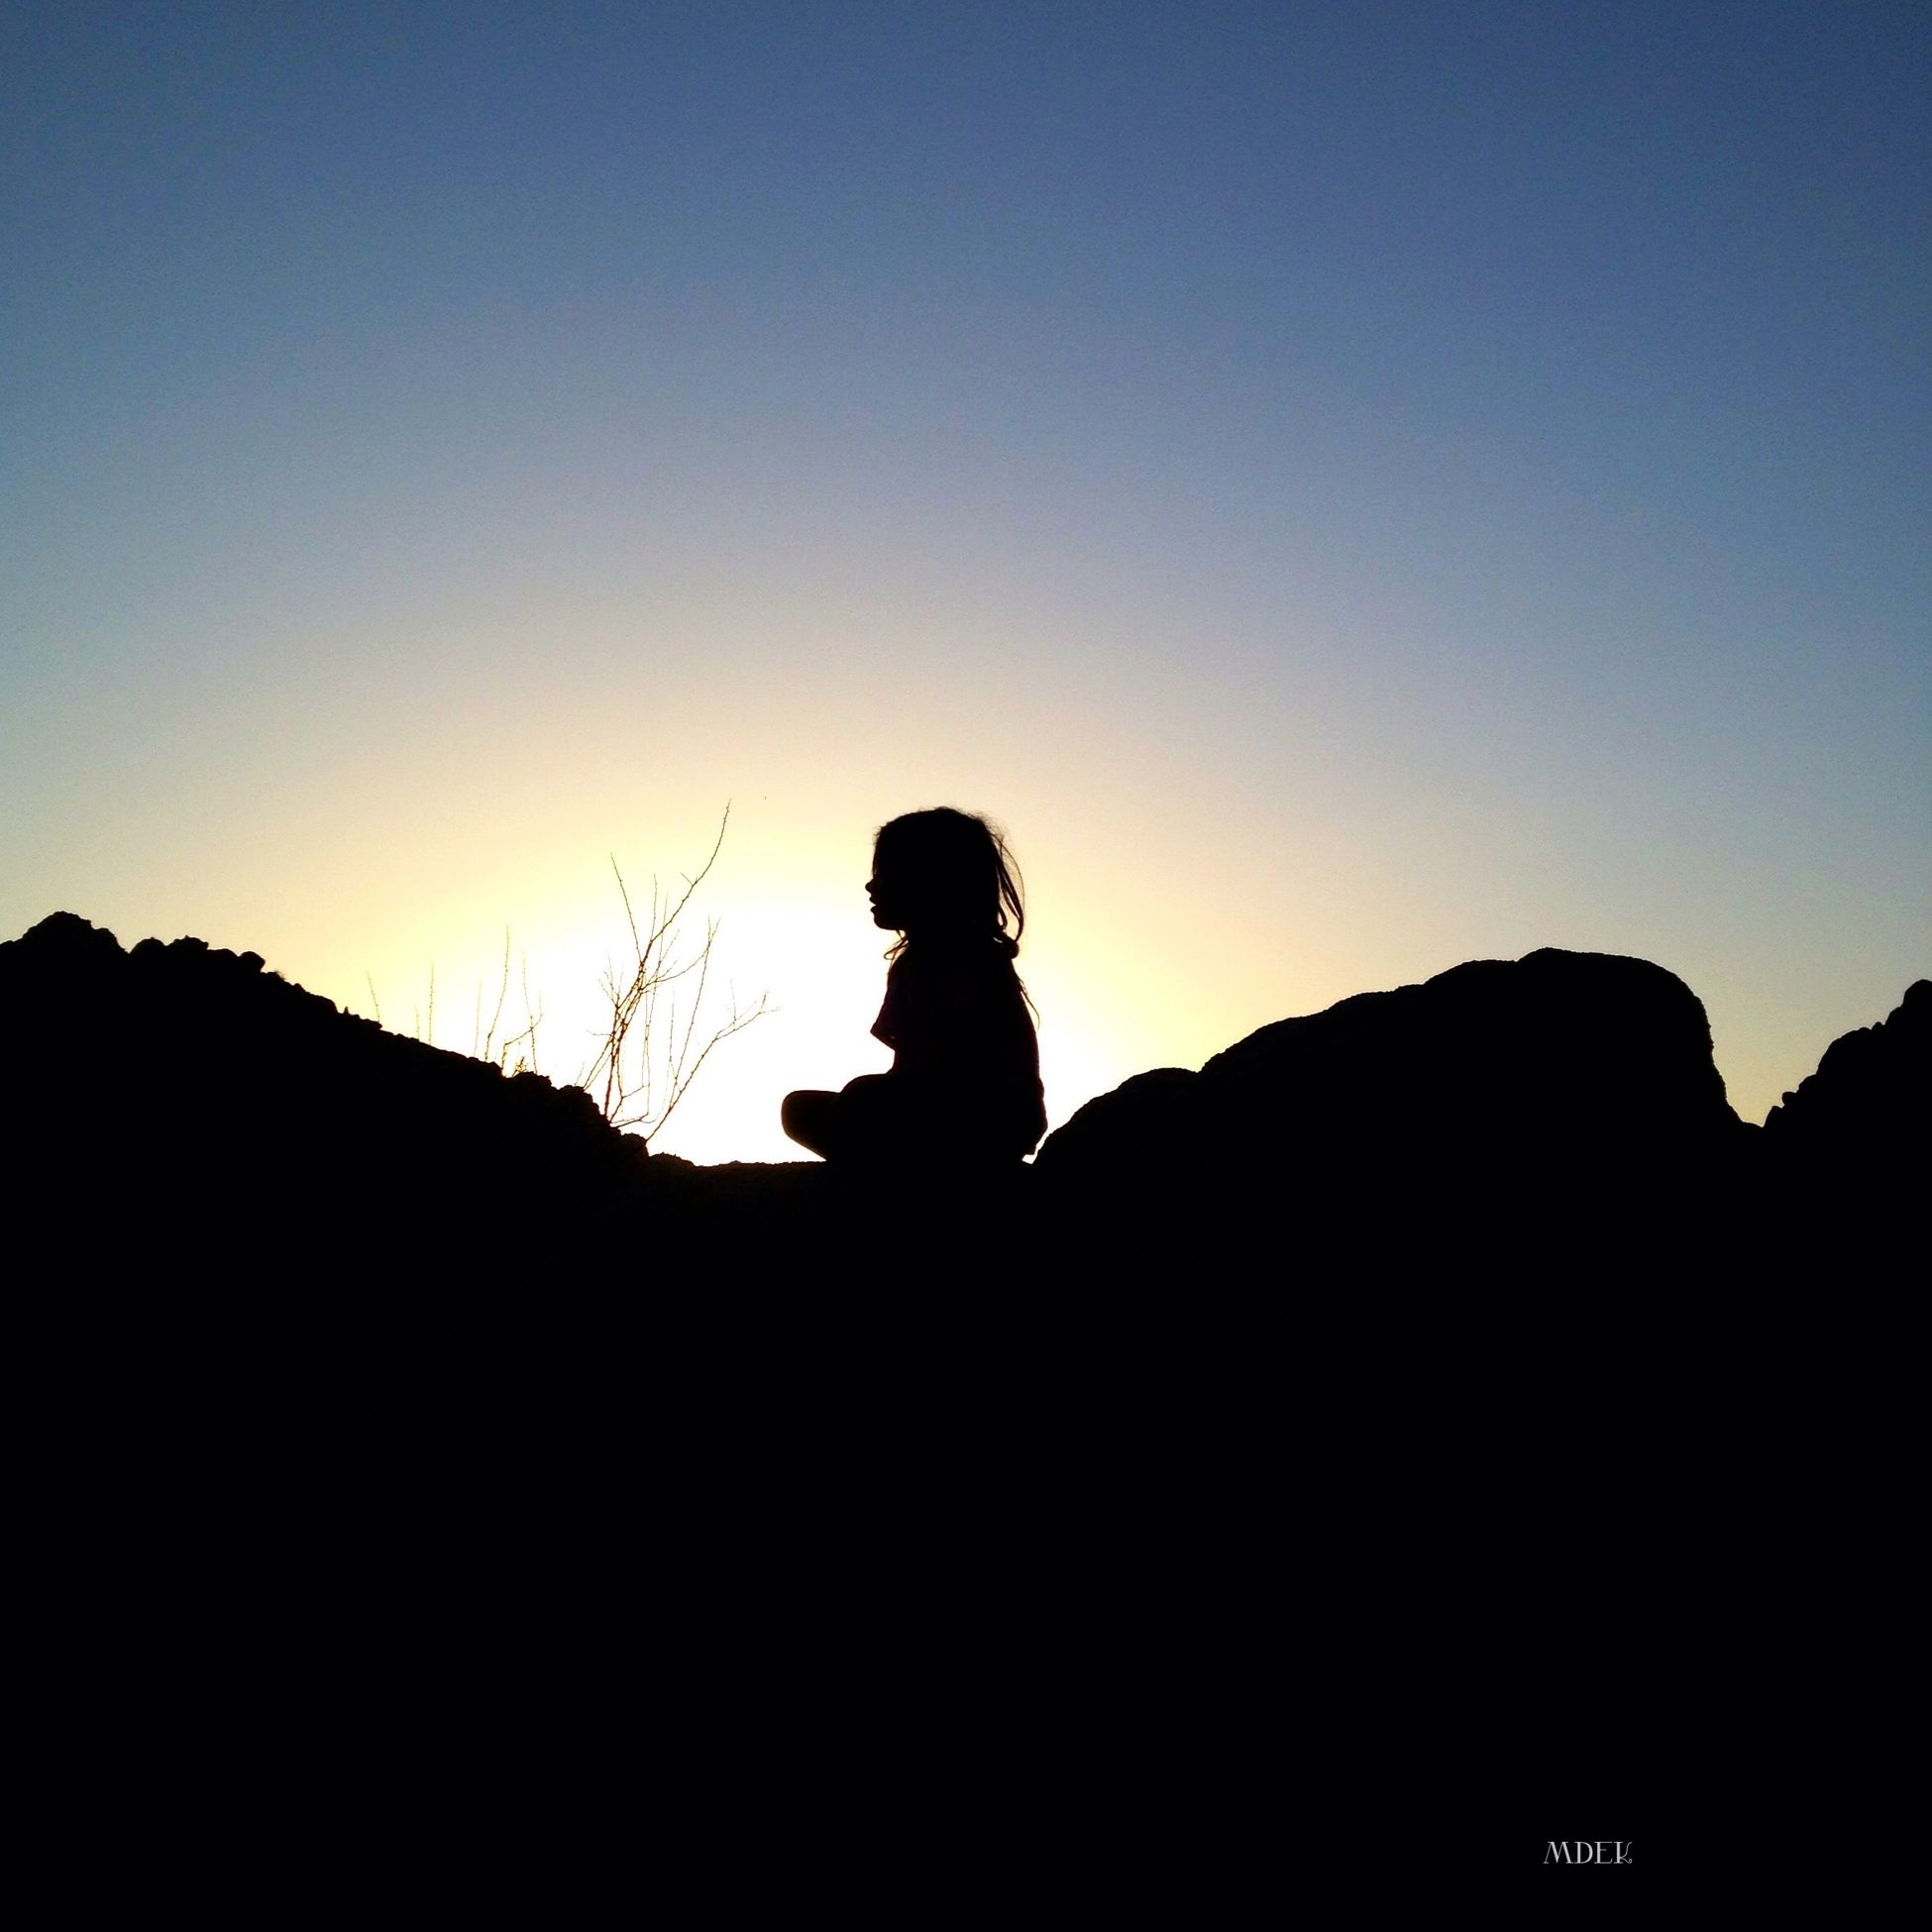 silhouette, copy space, clear sky, sunset, leisure activity, lifestyles, men, mountain, tranquility, scenics, beauty in nature, tranquil scene, nature, standing, outline, sky, dusk, unrecognizable person